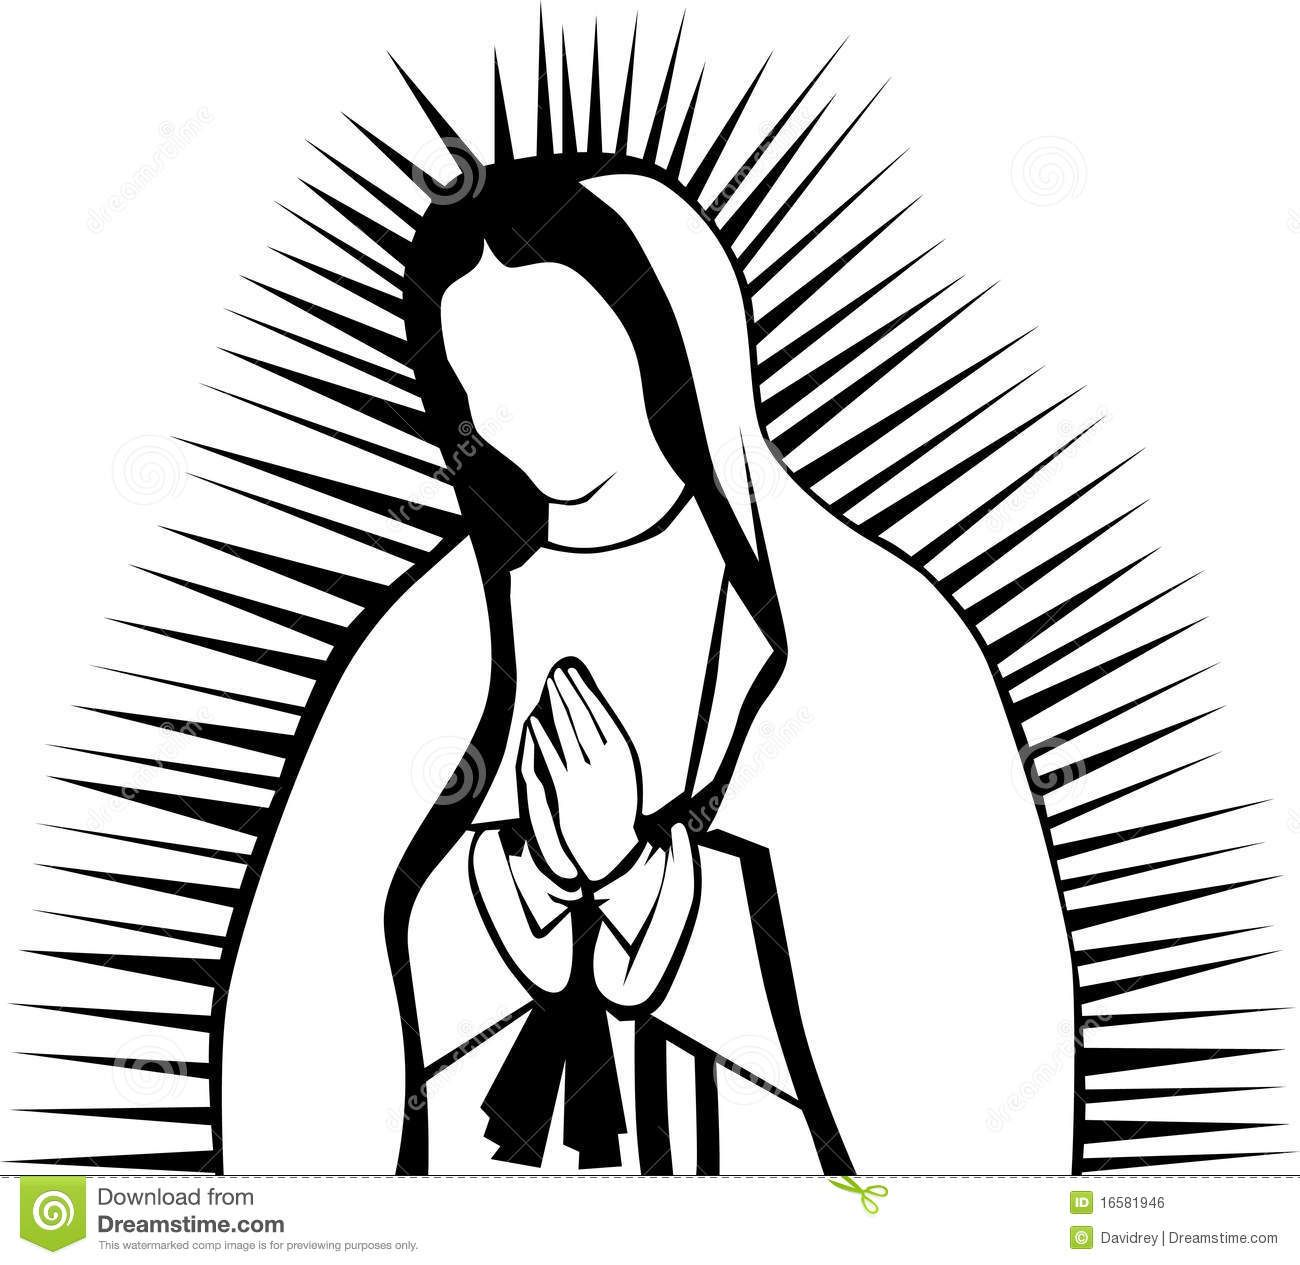 Imagenes virgen de guadalupe clipart banner transparent our lady of guadalupe clip art images | Black and white clipart ... banner transparent